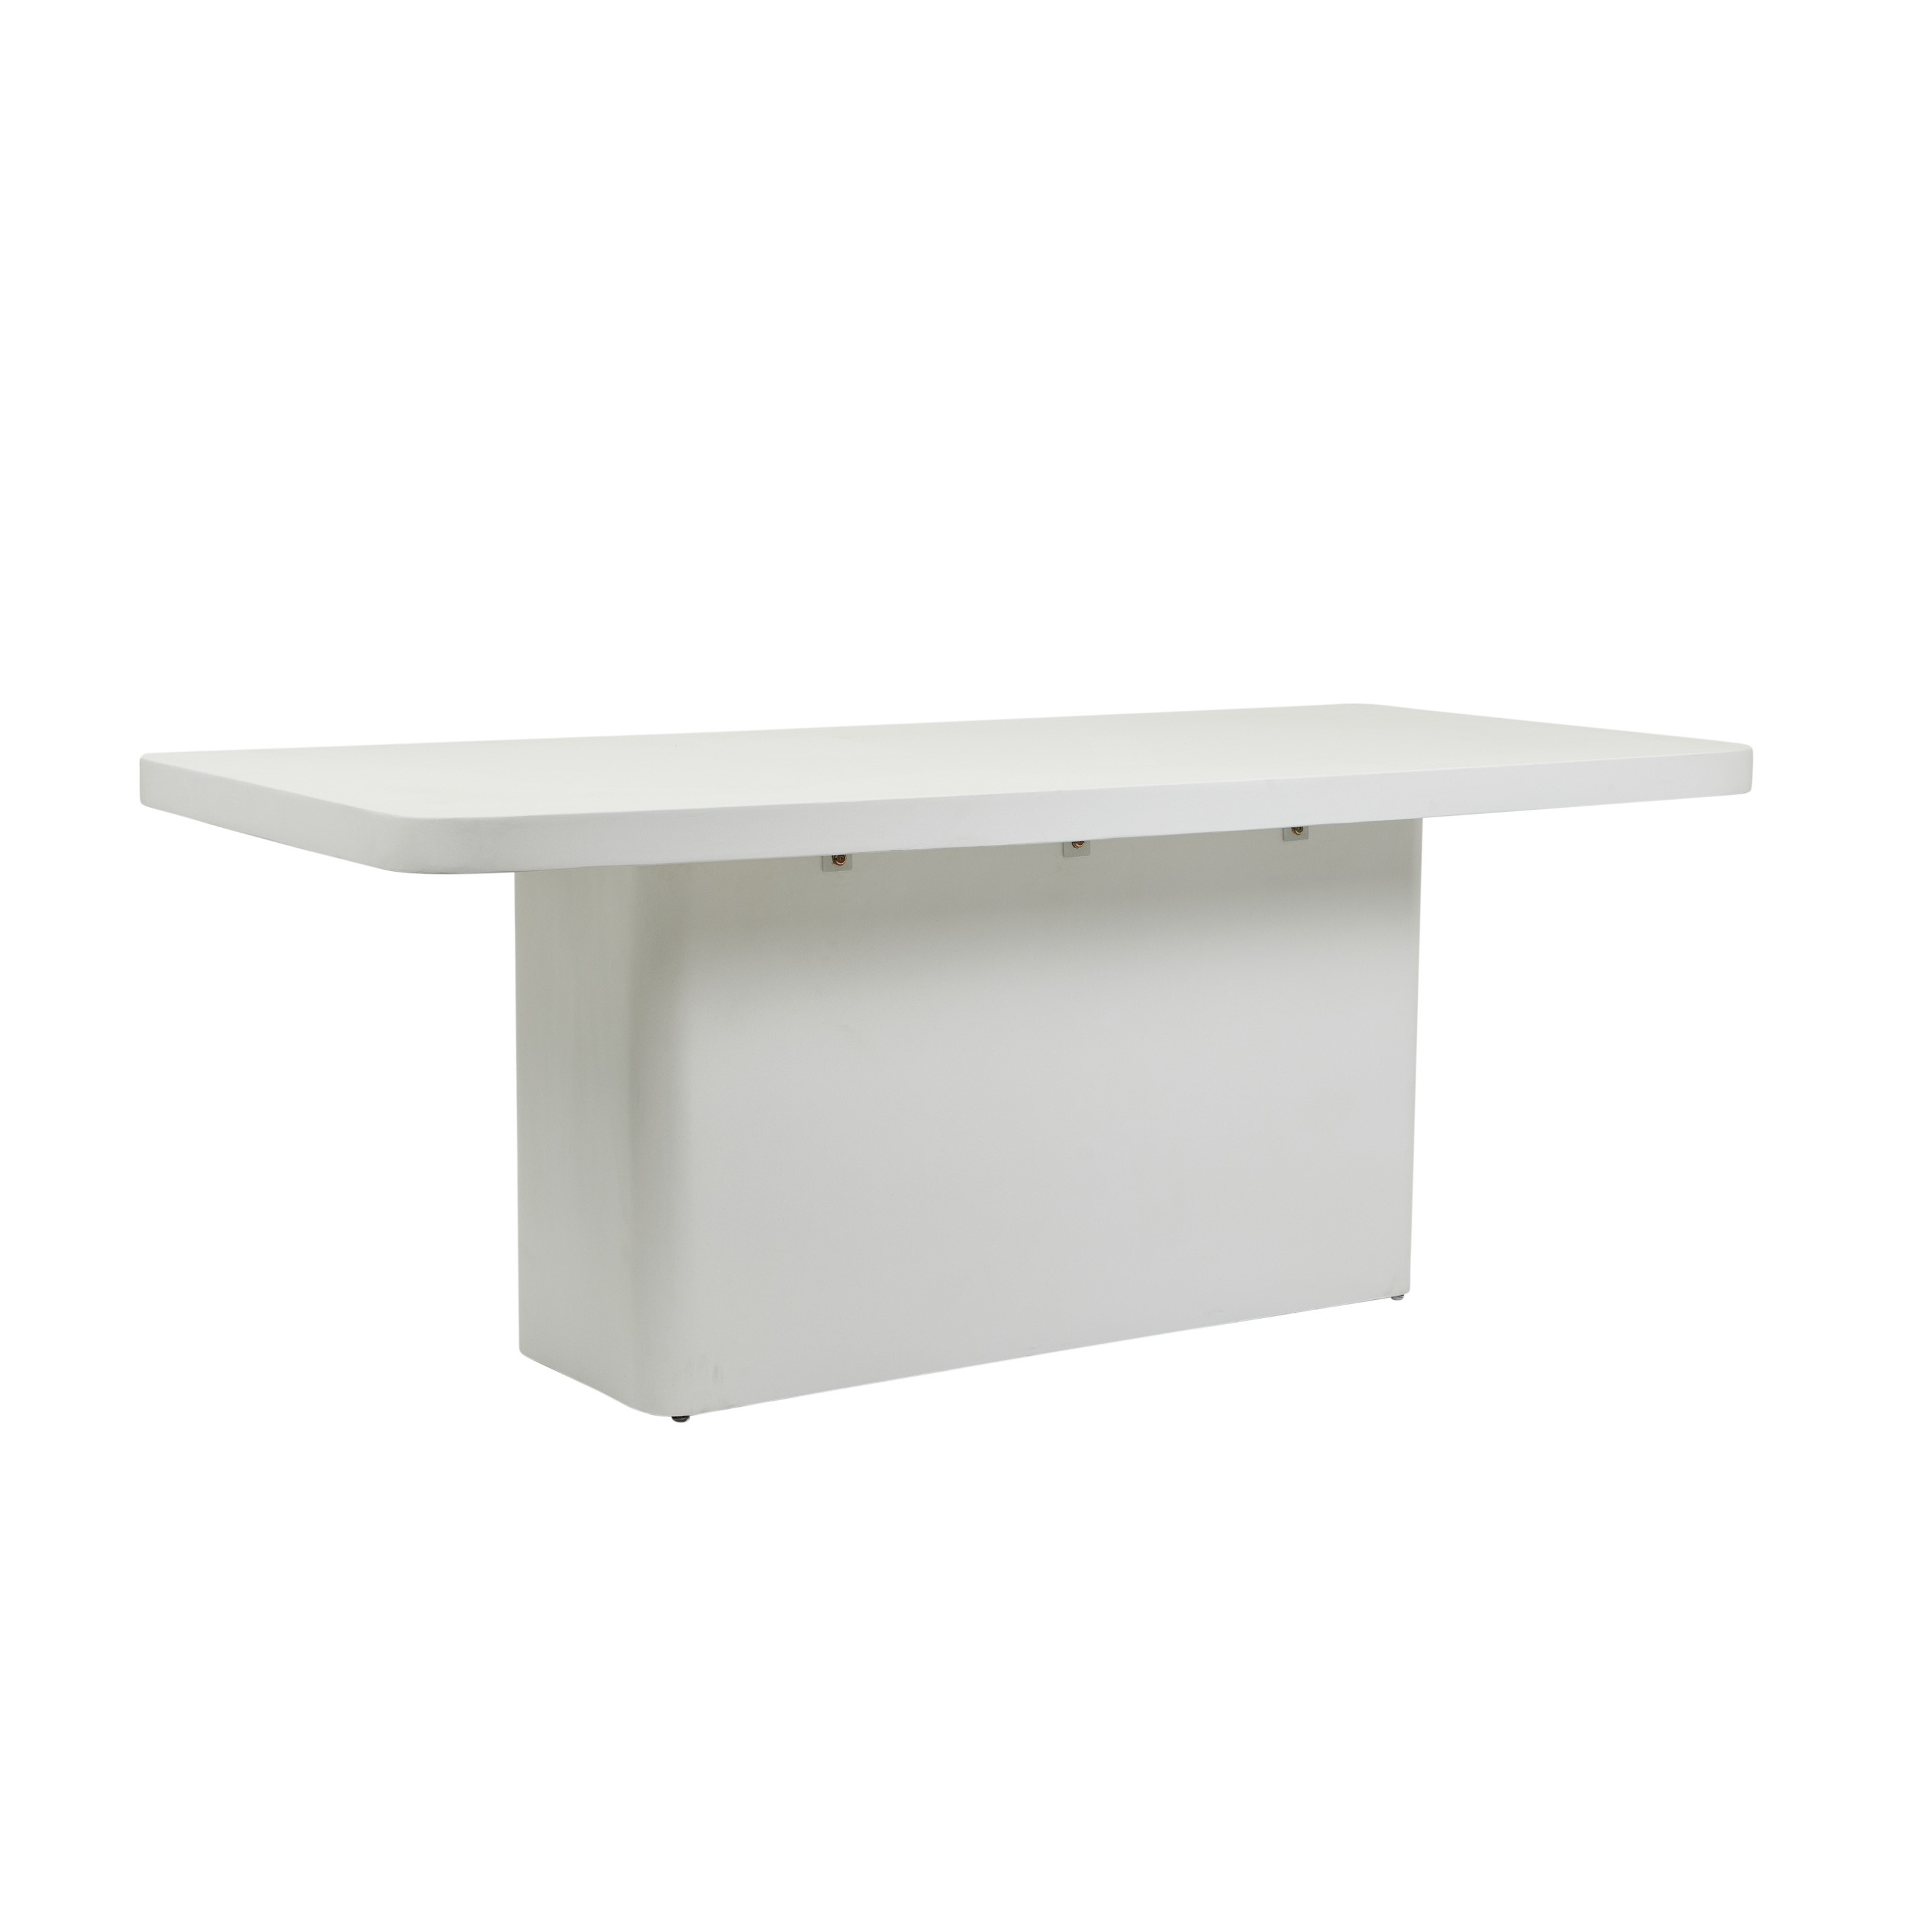 Furniture Hero-Images Dining-Tables ossa-concrete-cube-02